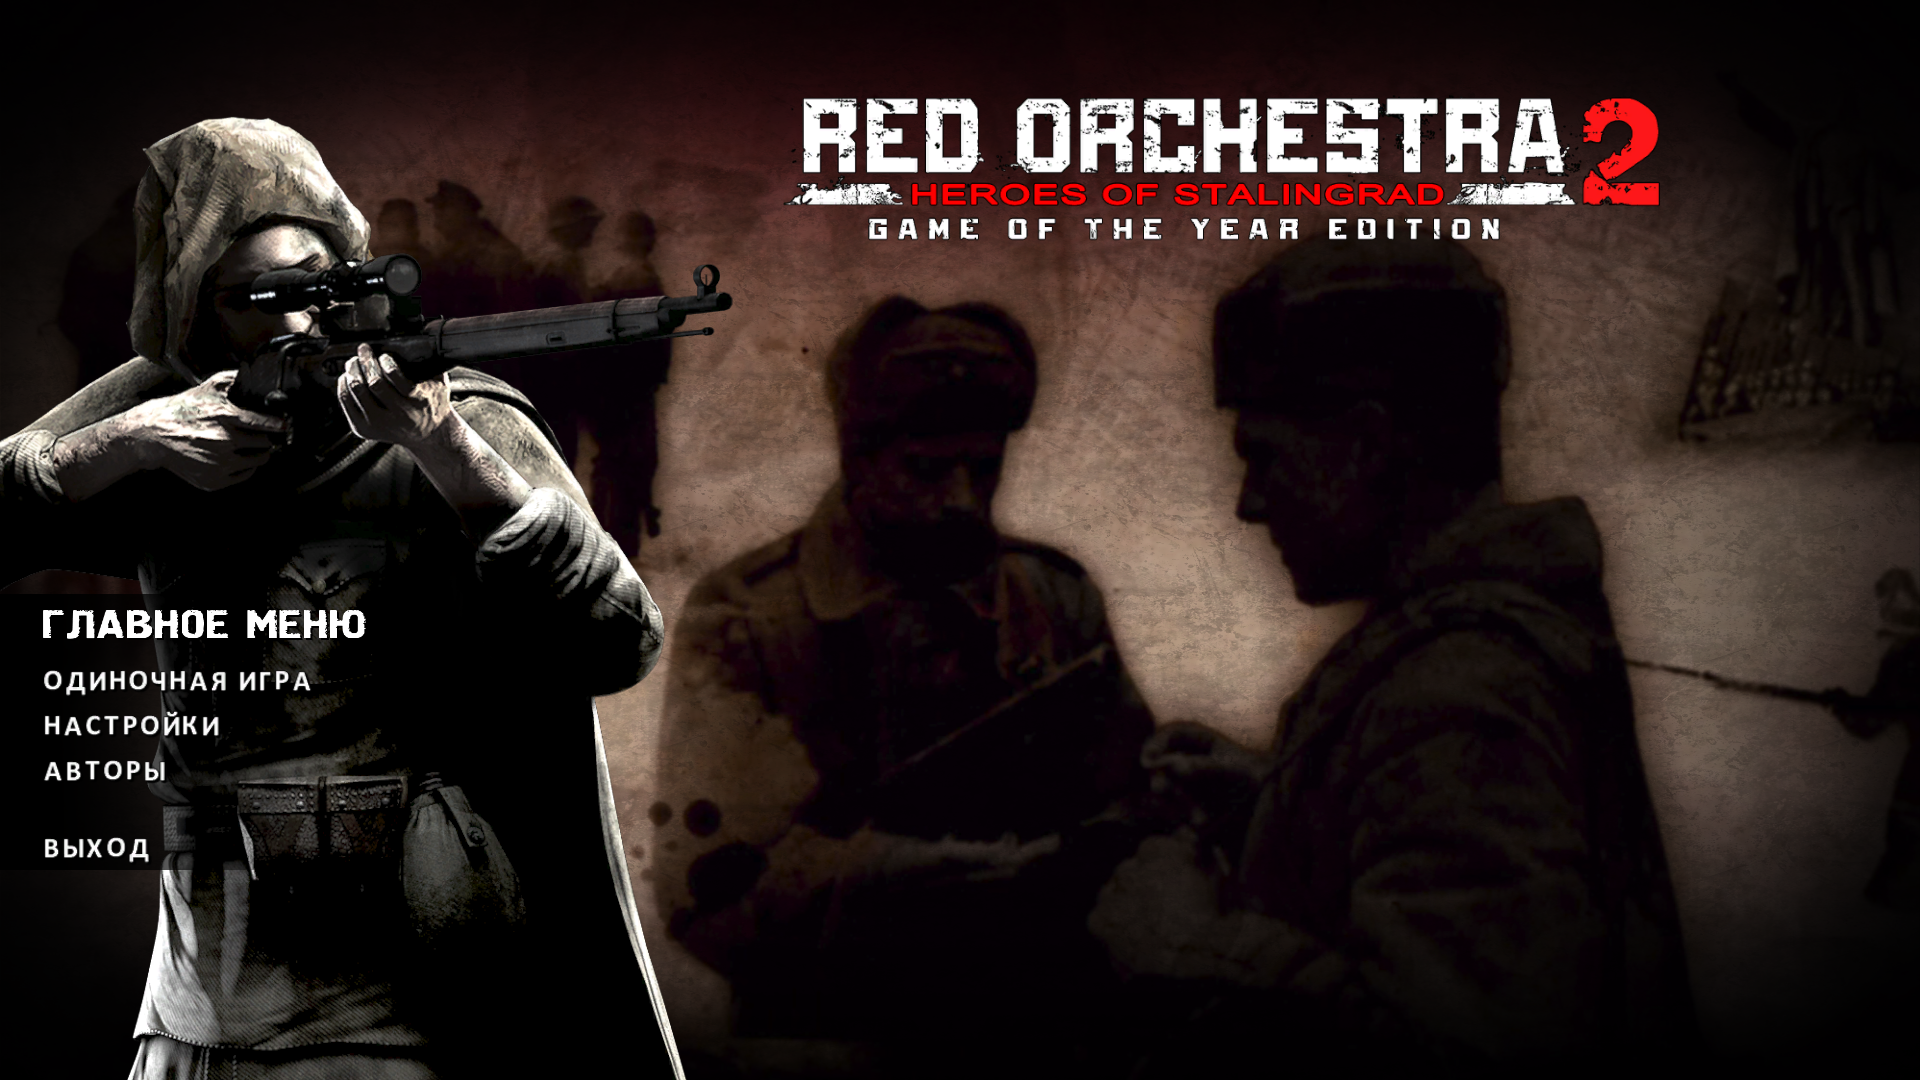 Red Orchestra 2: Heroes of Stalingrad - Game of the Year Edition Windows Main menu (special offer version with Single player content only)